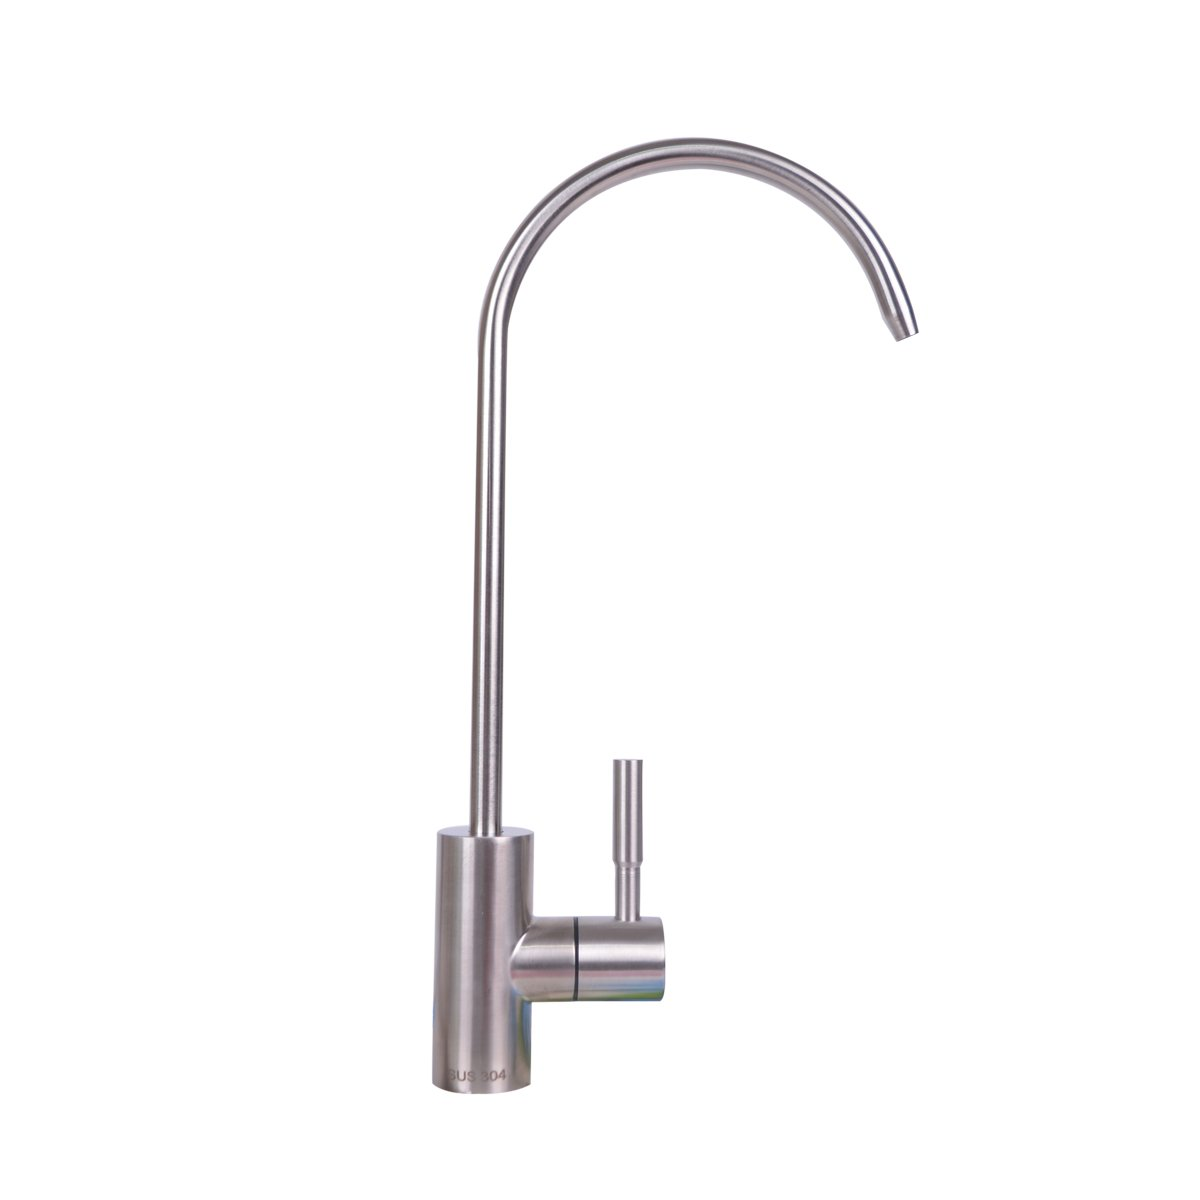 Baitaihem Drinking Water Faucets 360 Degree Chrome RO Reverse Osmosis Kitchen Bar Sink Drinking Water Filter Faucet Fits 1/4-inch Tube